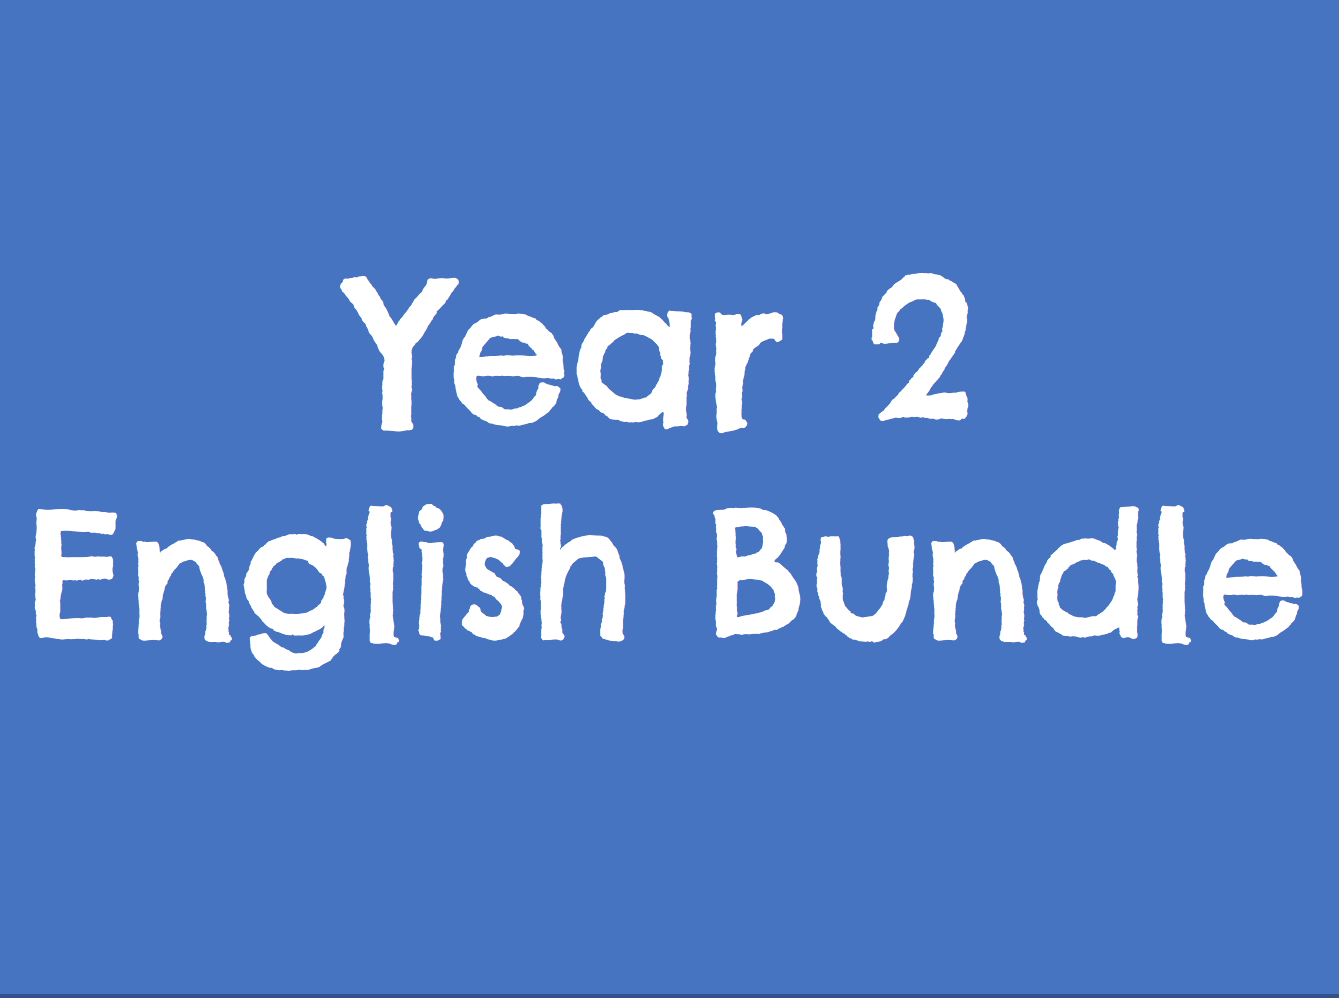 Year 2 English Bundle